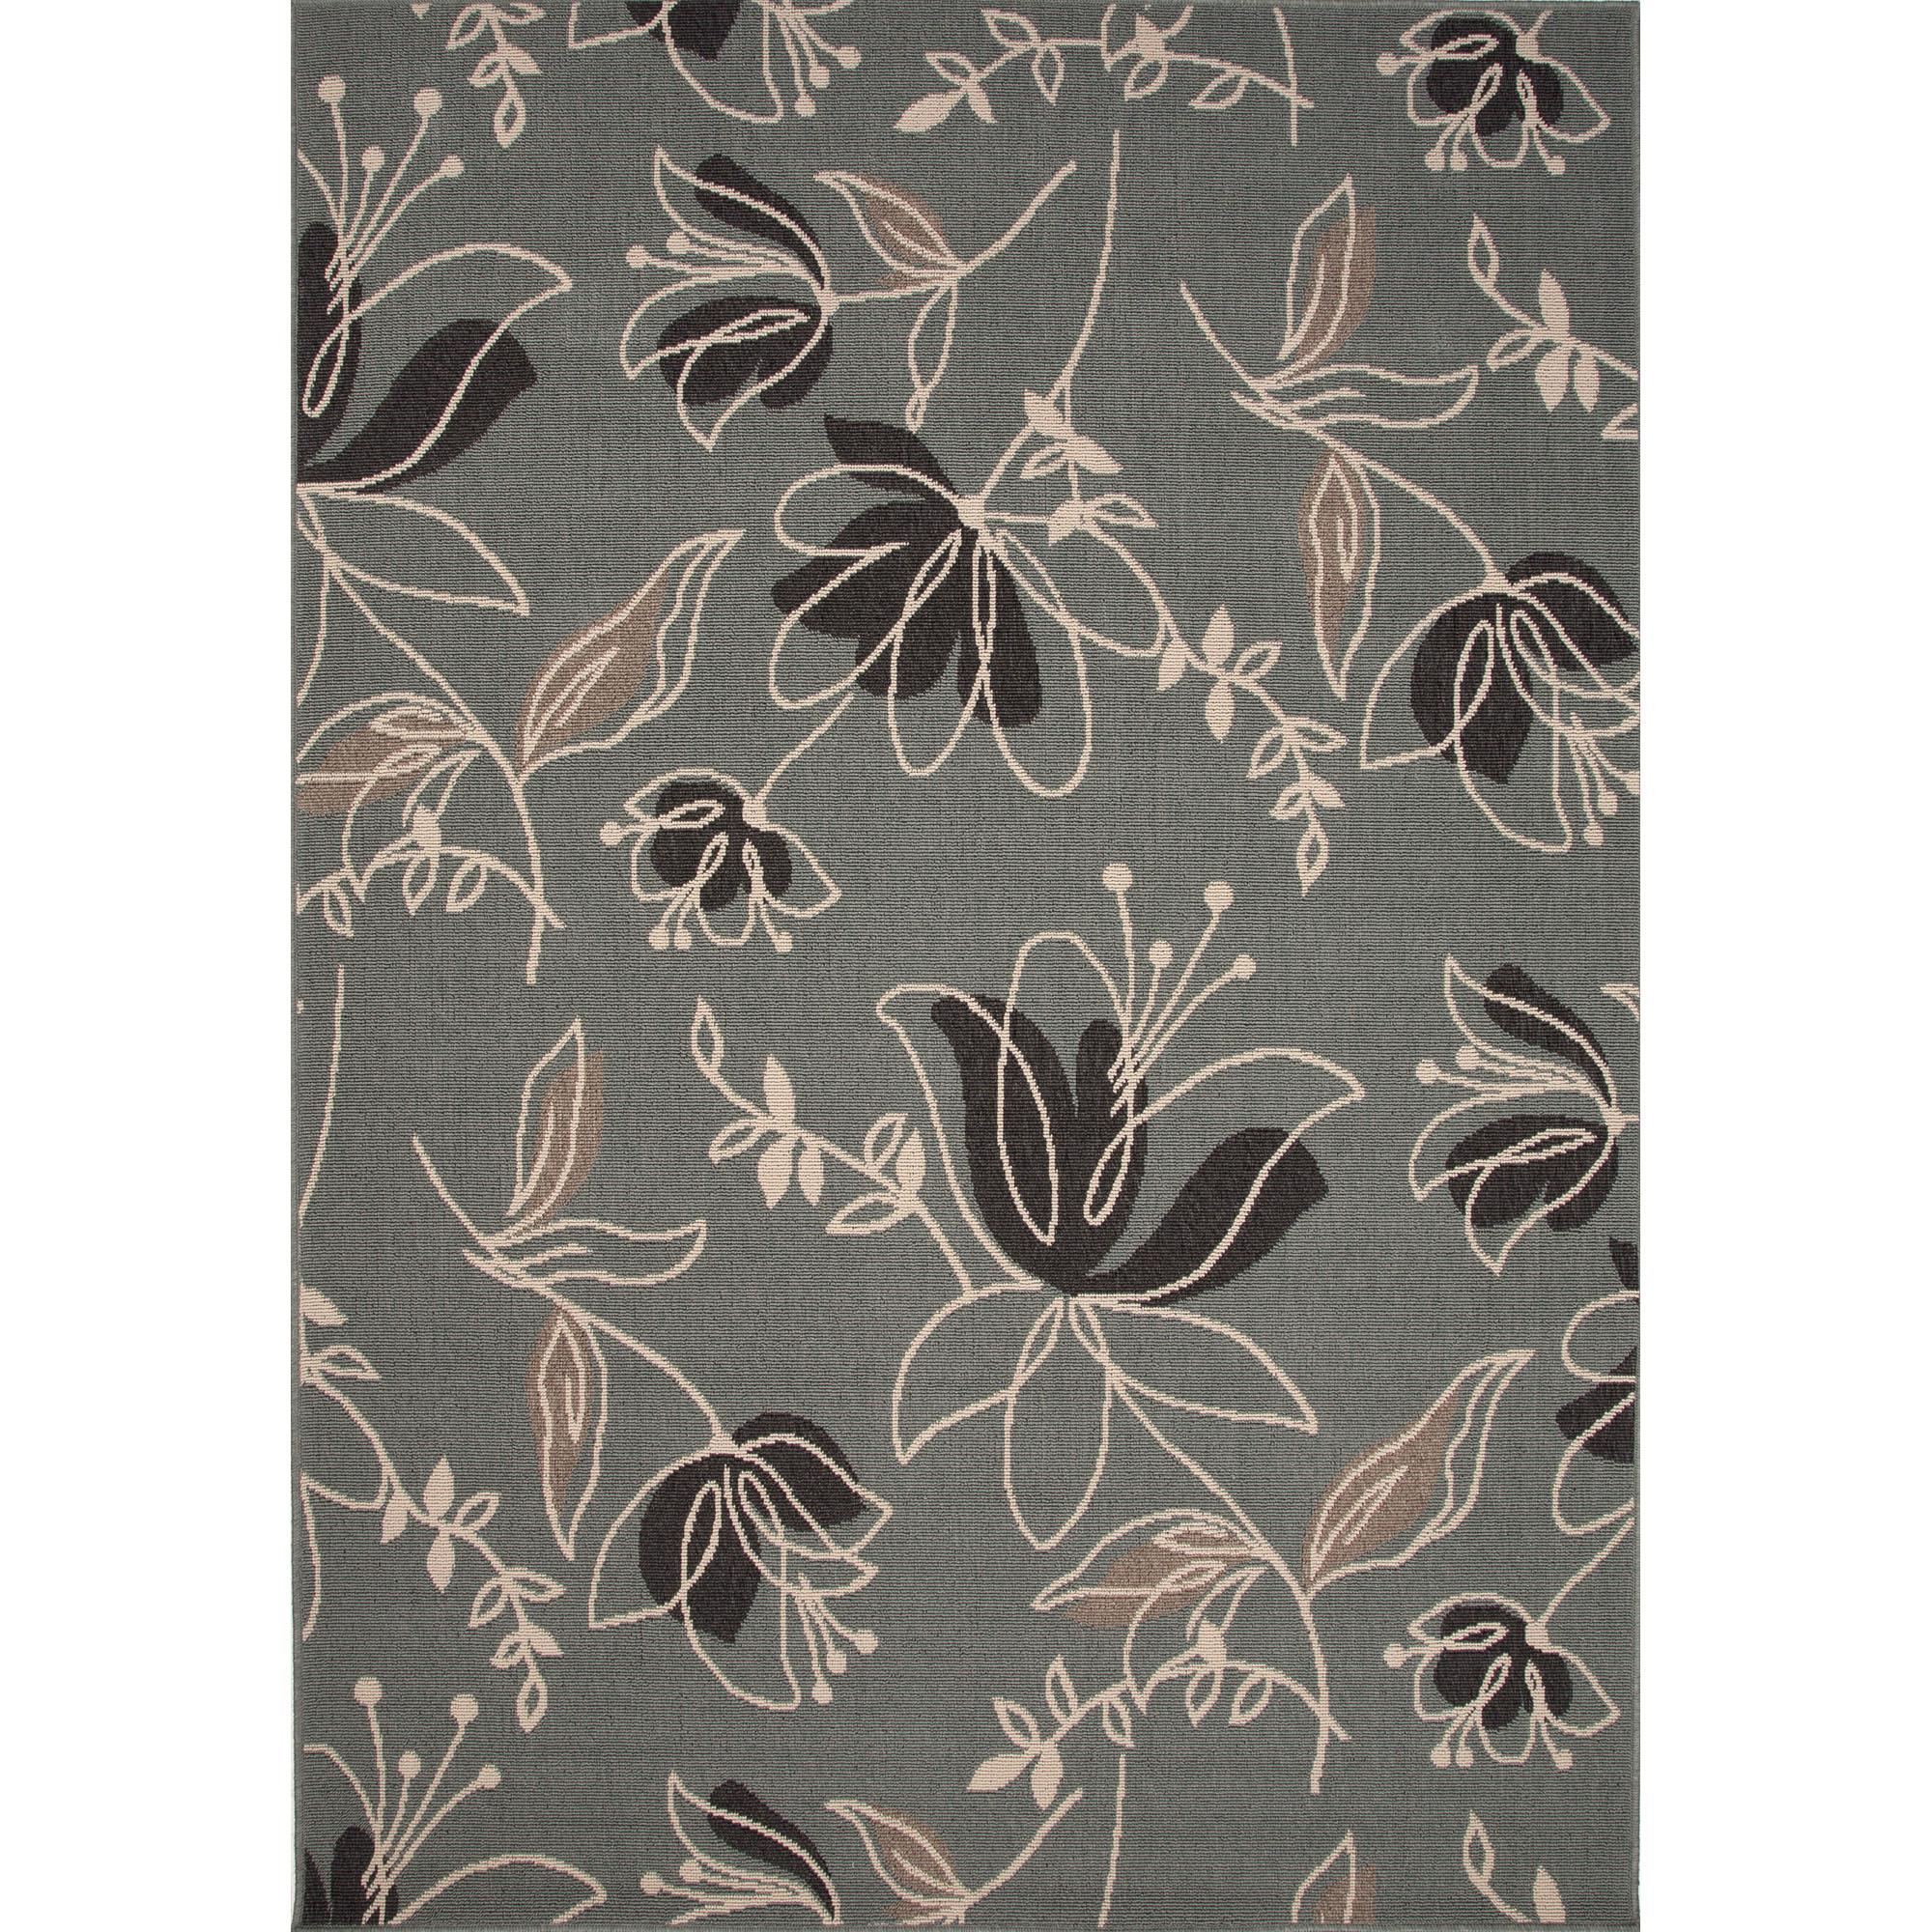 JAIPUR Rugs Bloom 2 x 3.7 Rug - Item Number: RUG121910